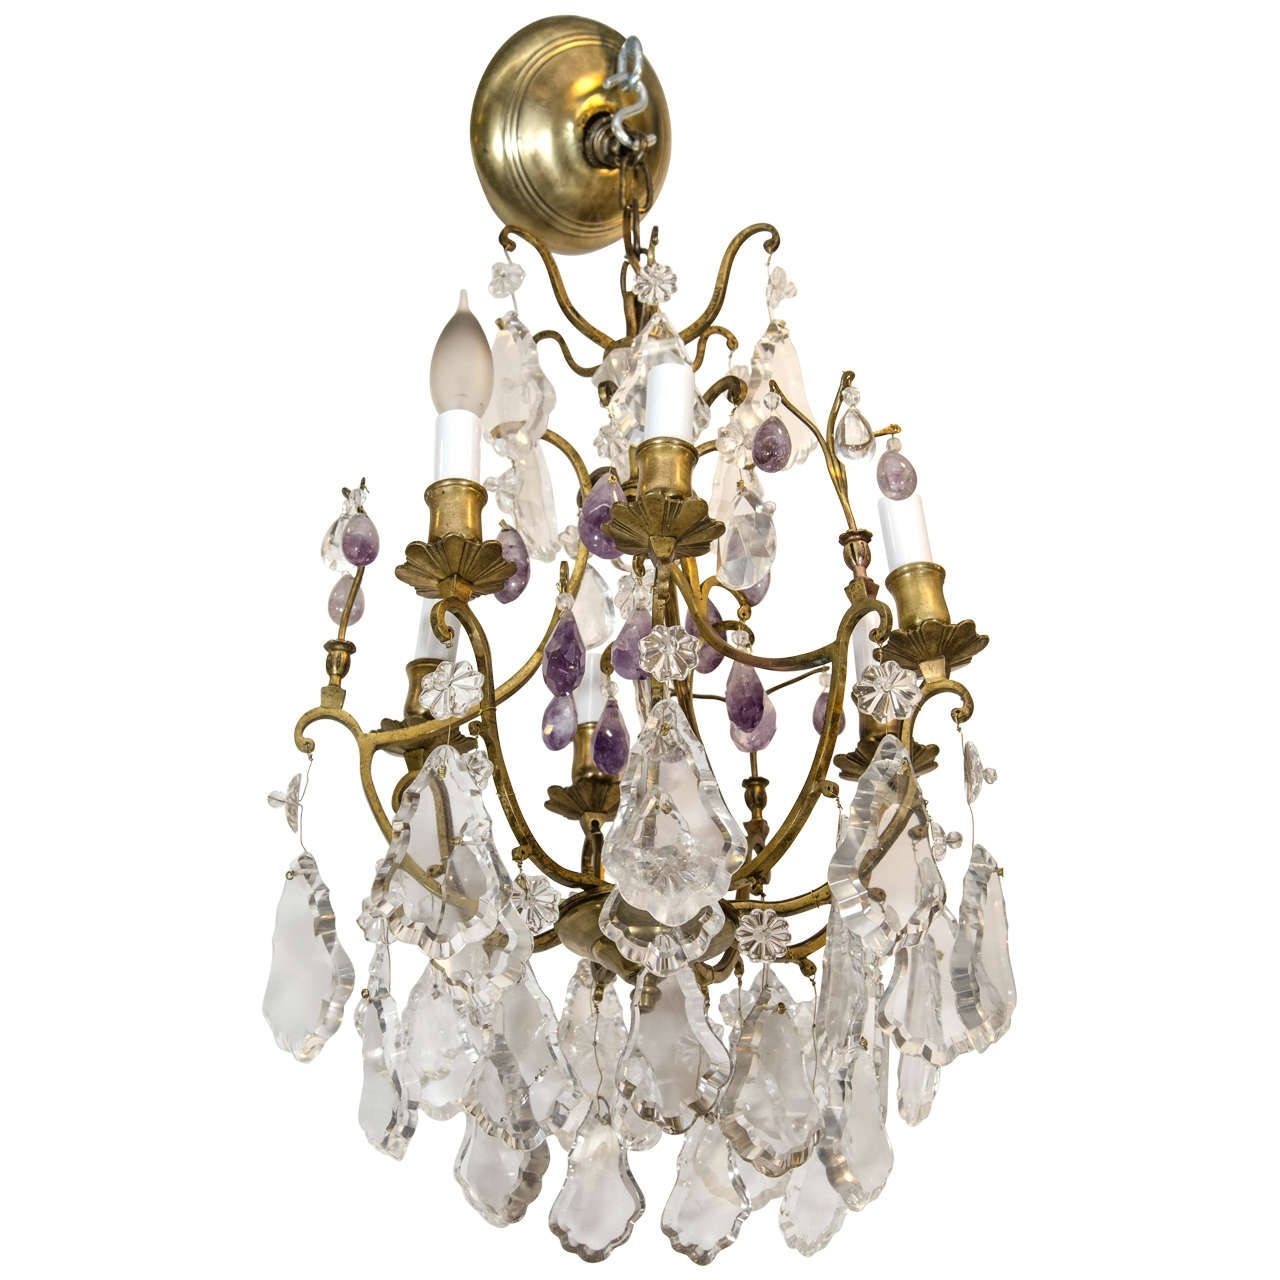 Purple Crystal Chandeliers Throughout Most Recently Released Gilded Bronze And Rock Crystal Chandelier With Purple Amethyst After (View 2 of 20)